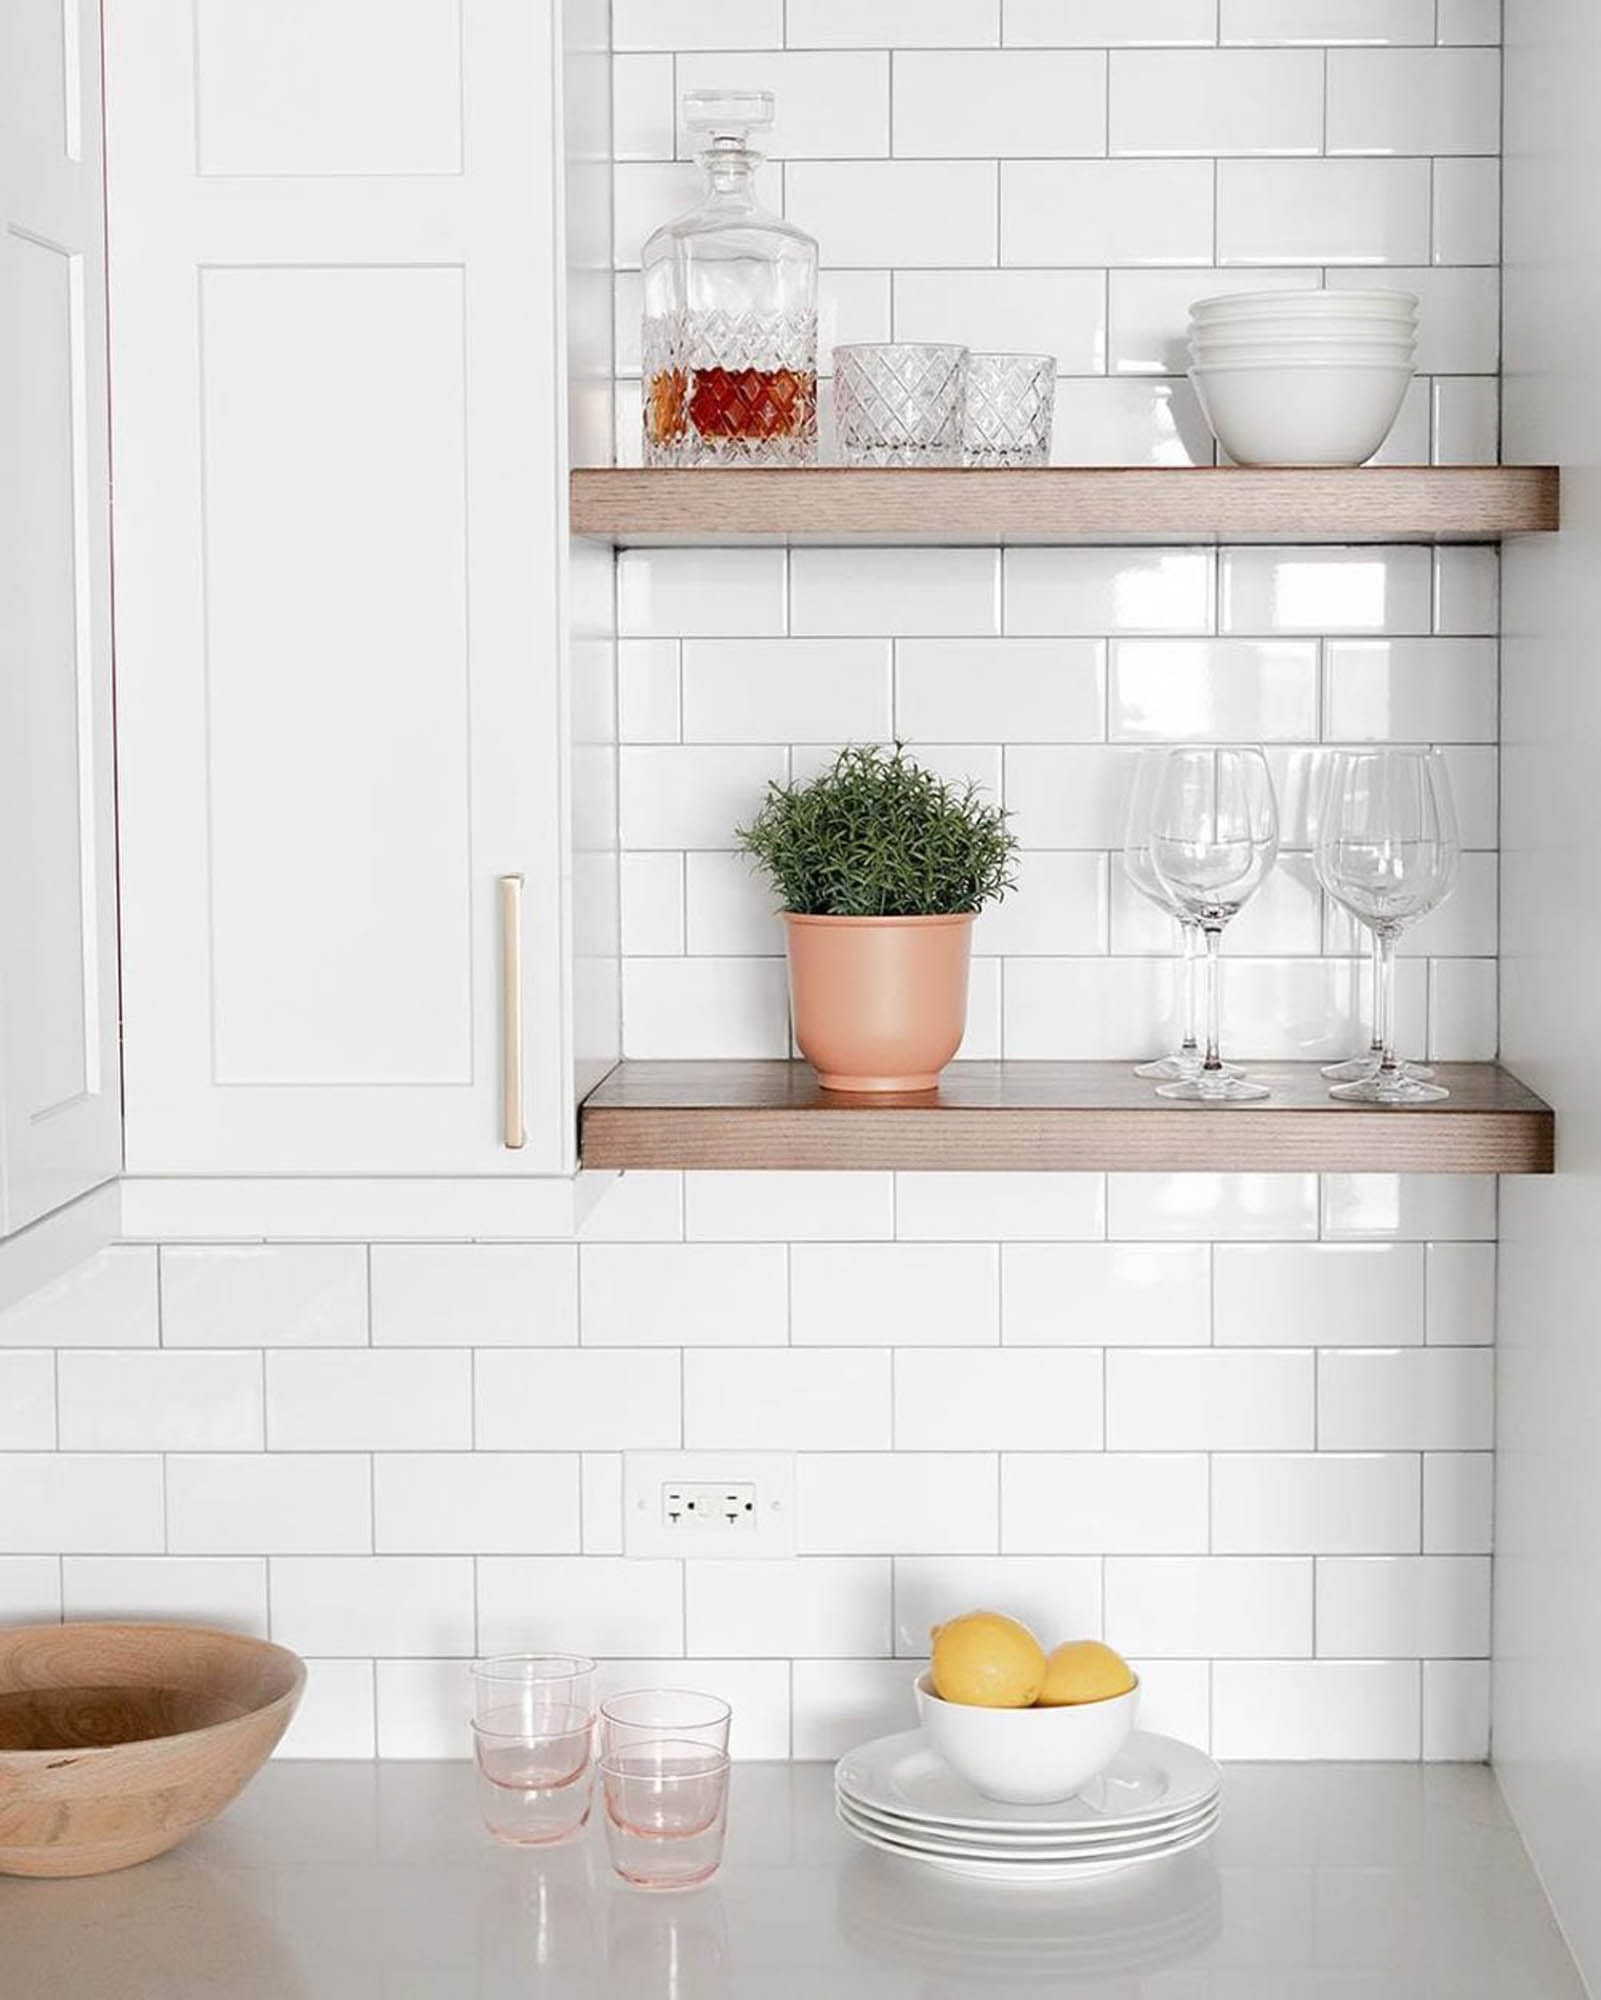 White subway tile and open shelving